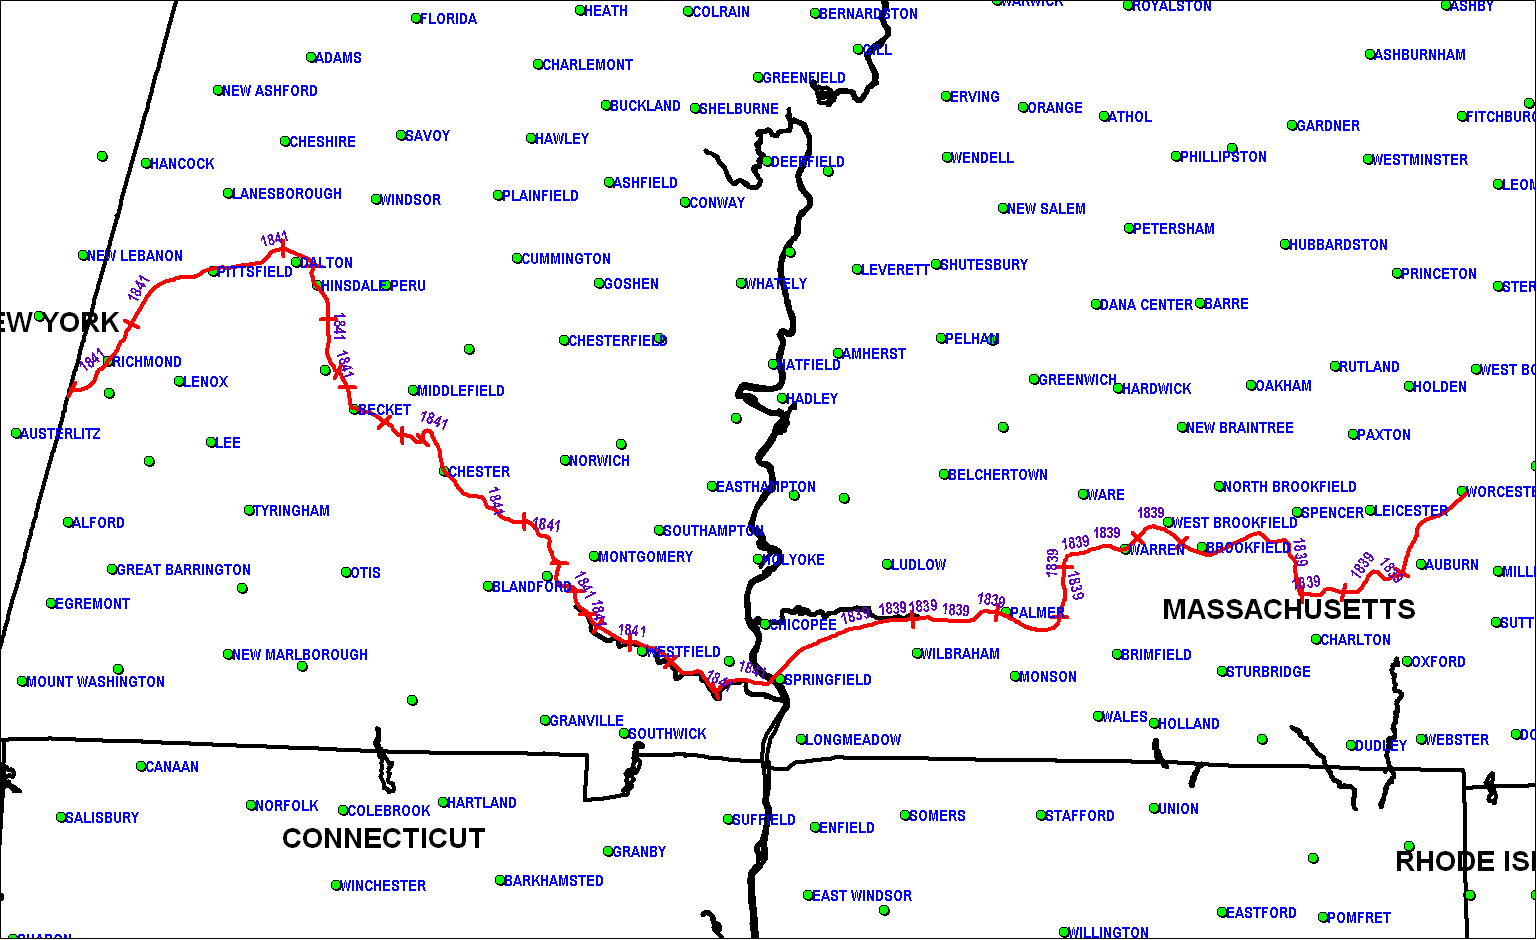 Western Railroad (MA) map as of 1850